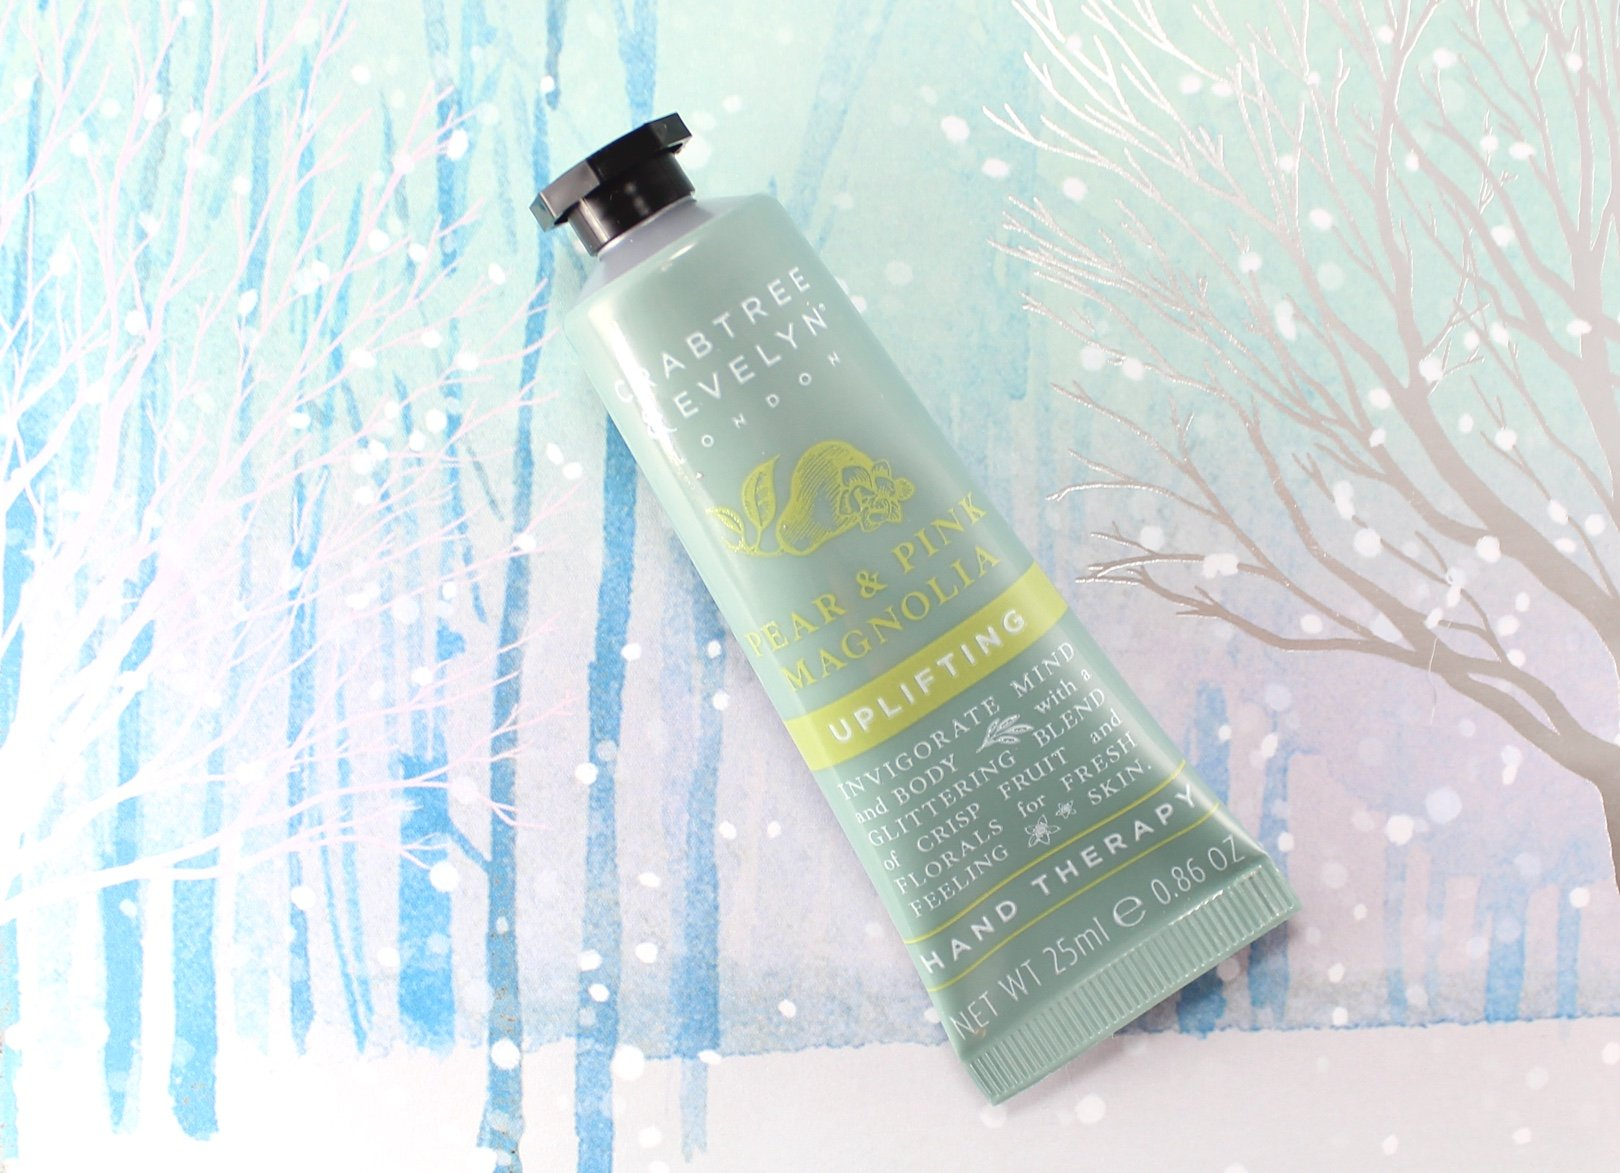 12 days of crabtree & evelyn advent calendar – day 10 pear pink magnolia